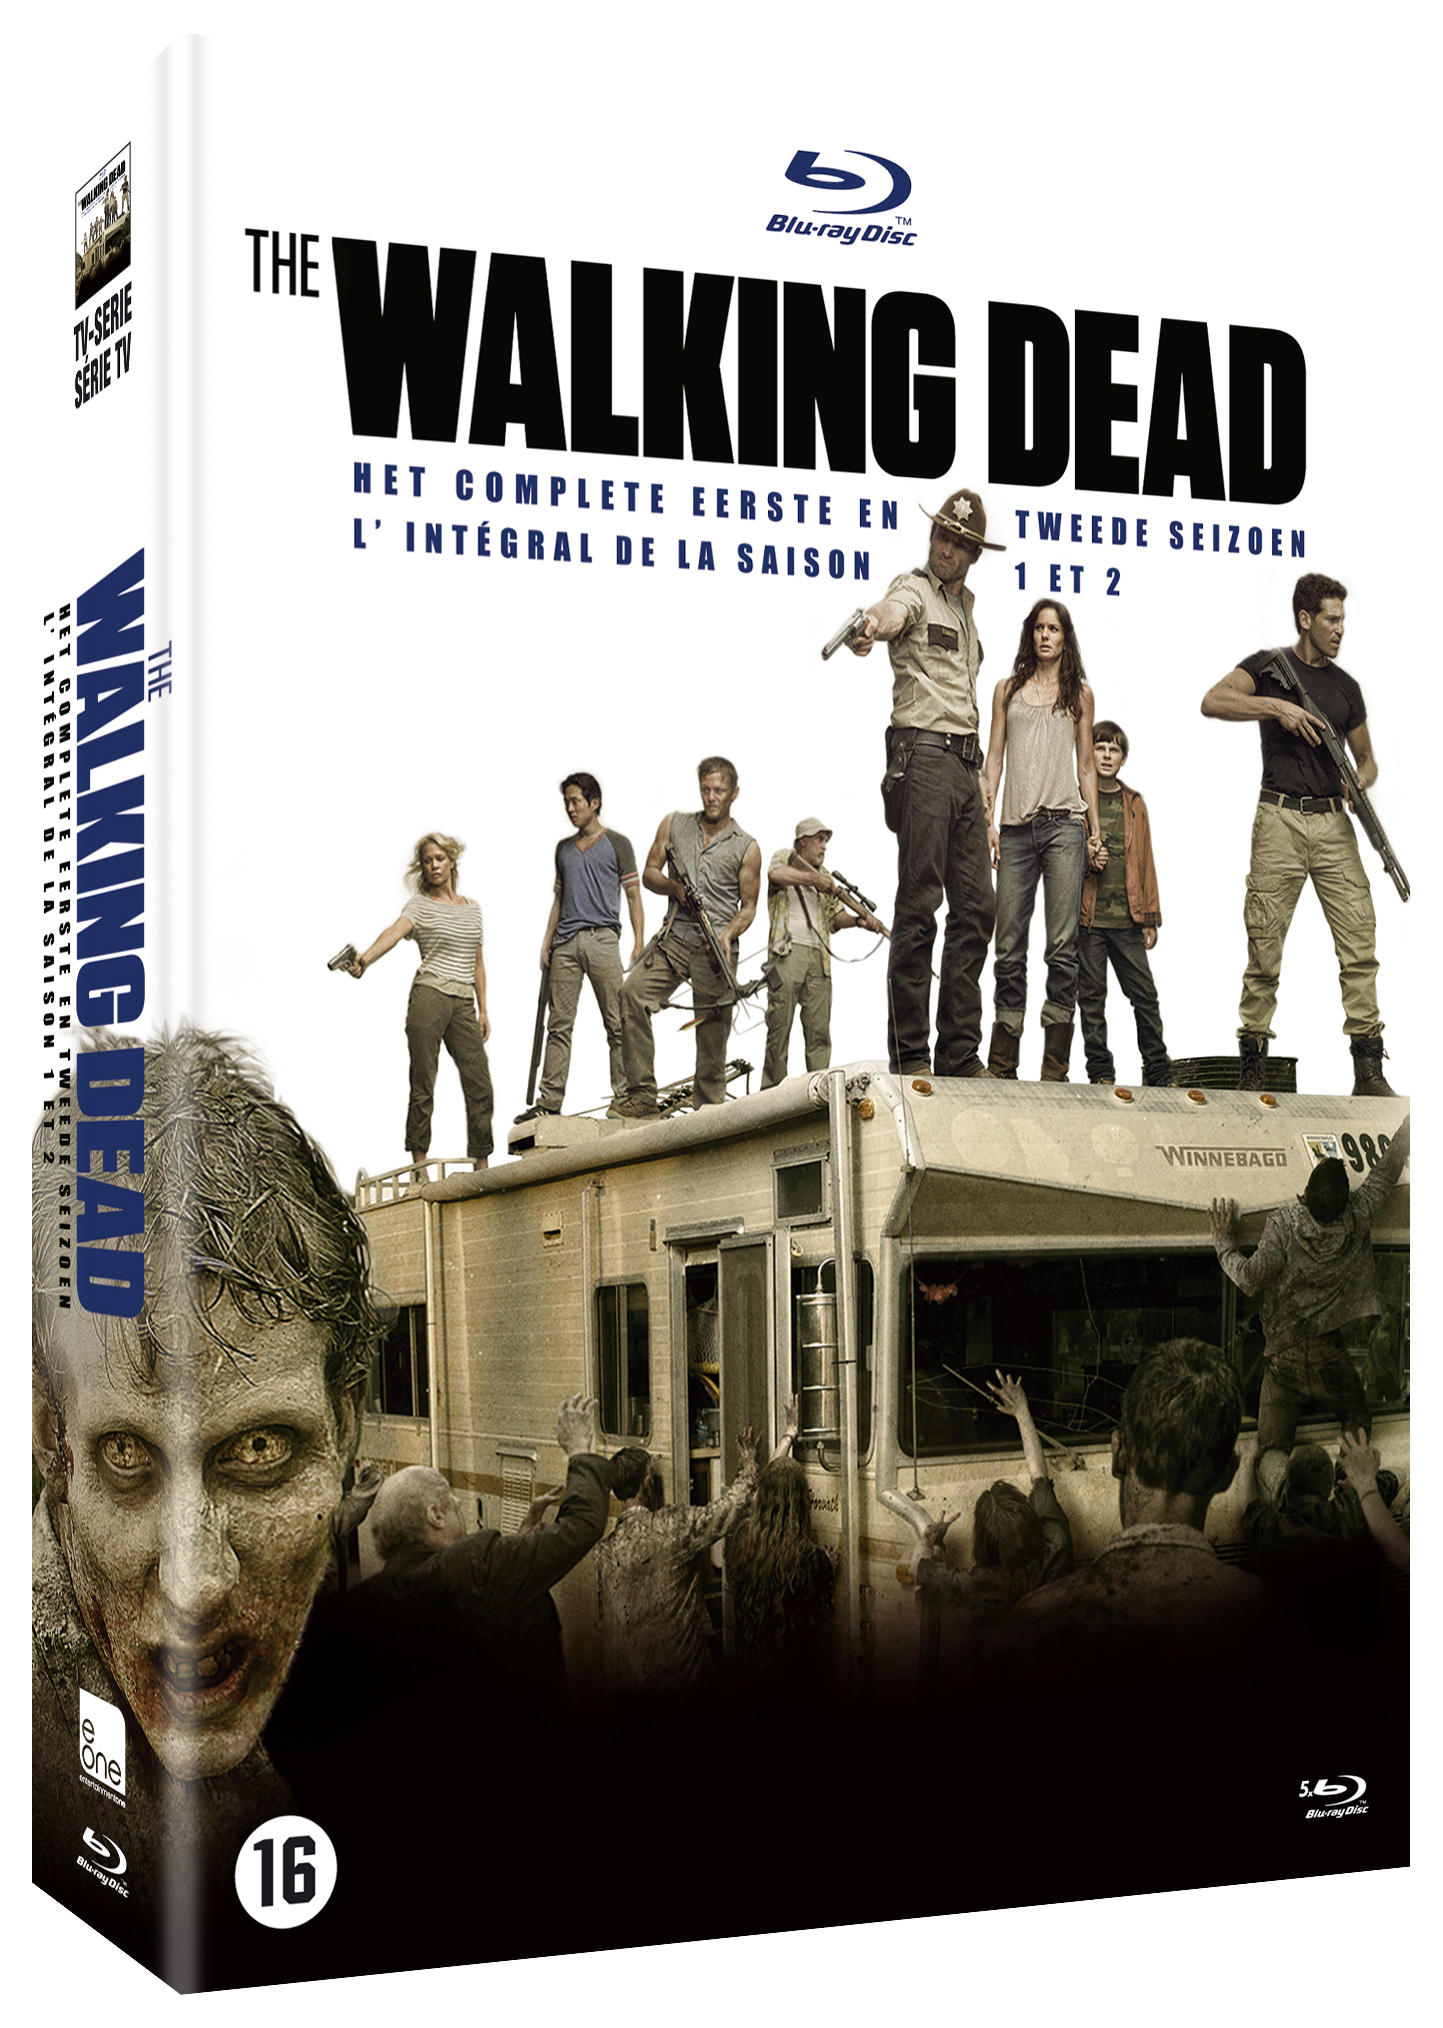 test blu ray the walking dead saison 1 2 cin rama. Black Bedroom Furniture Sets. Home Design Ideas